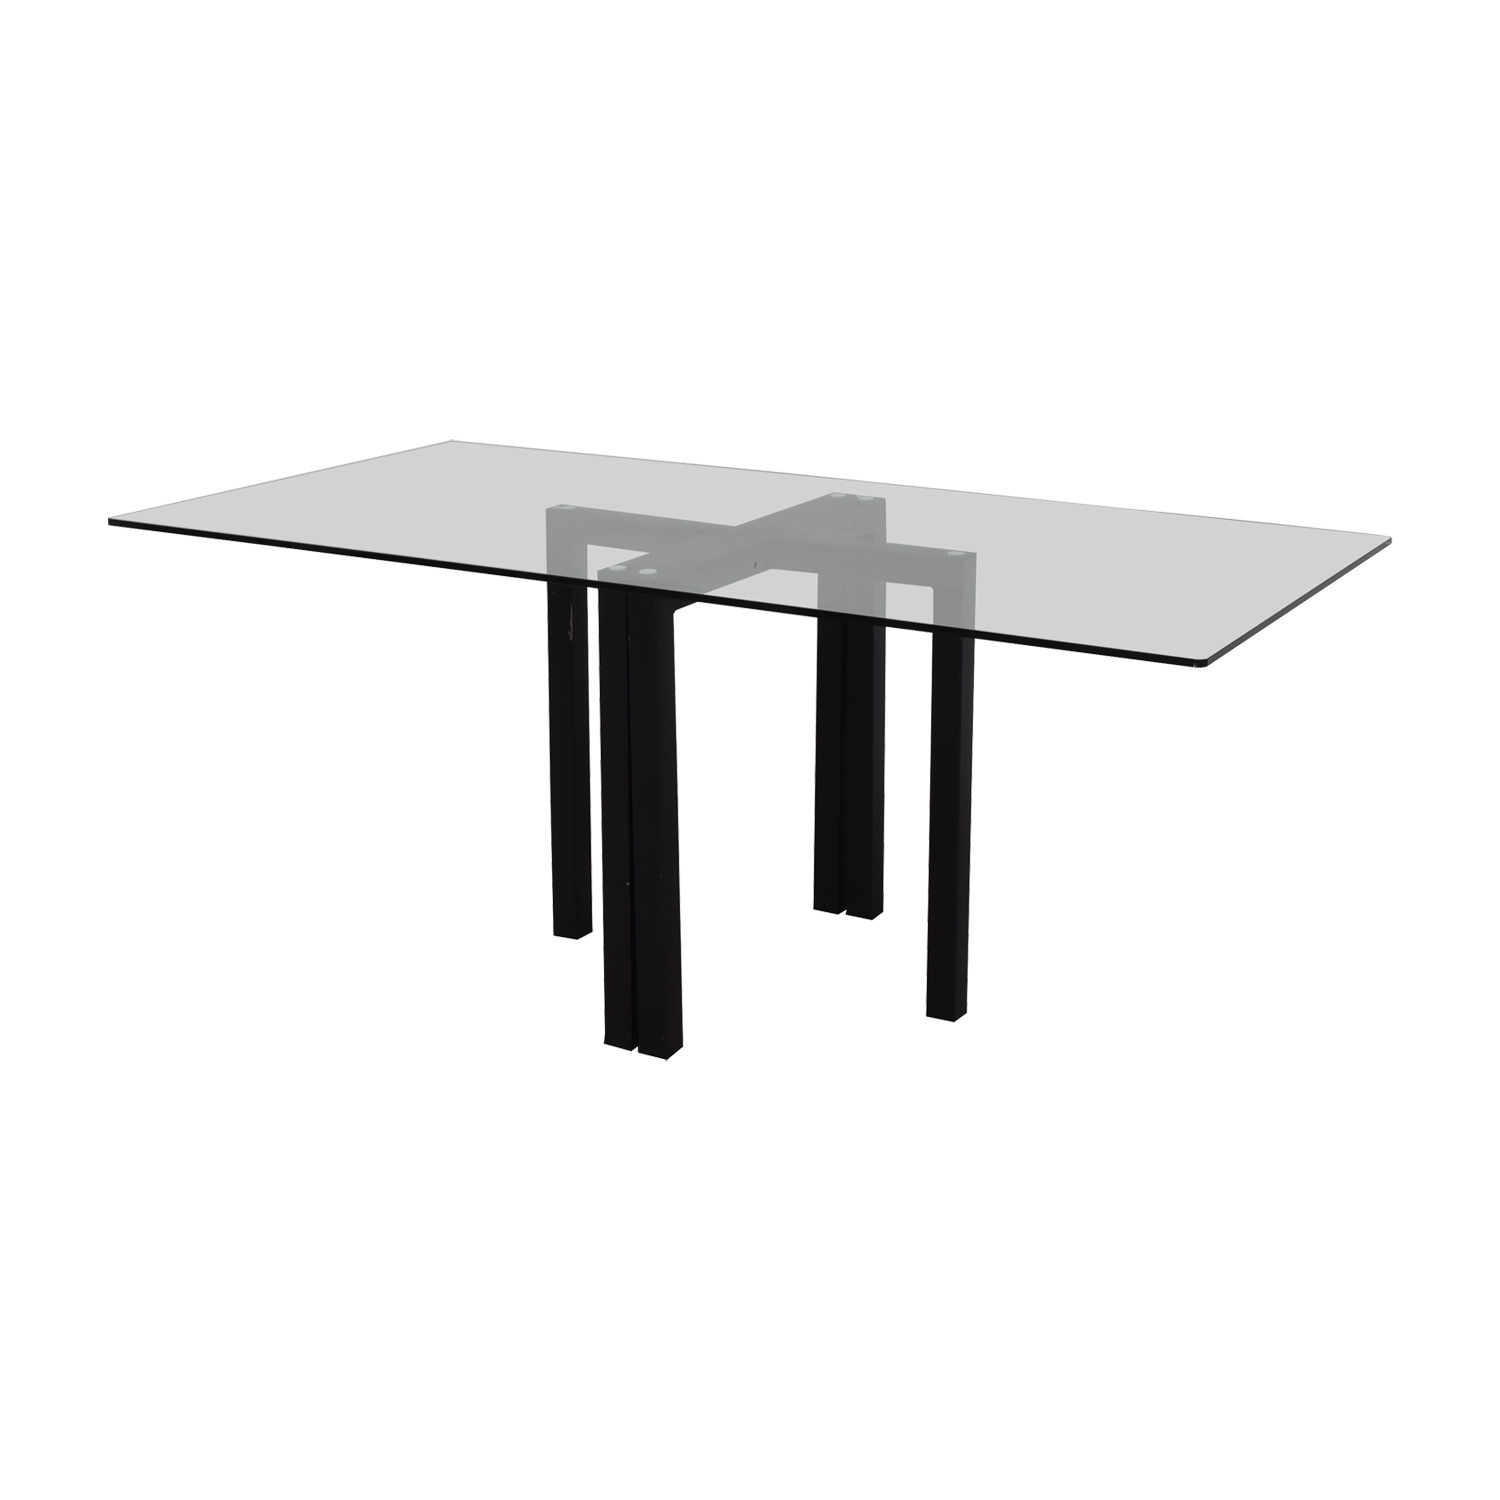 Buy Crate & Barrel Glass Dining Table Or Desk Crate